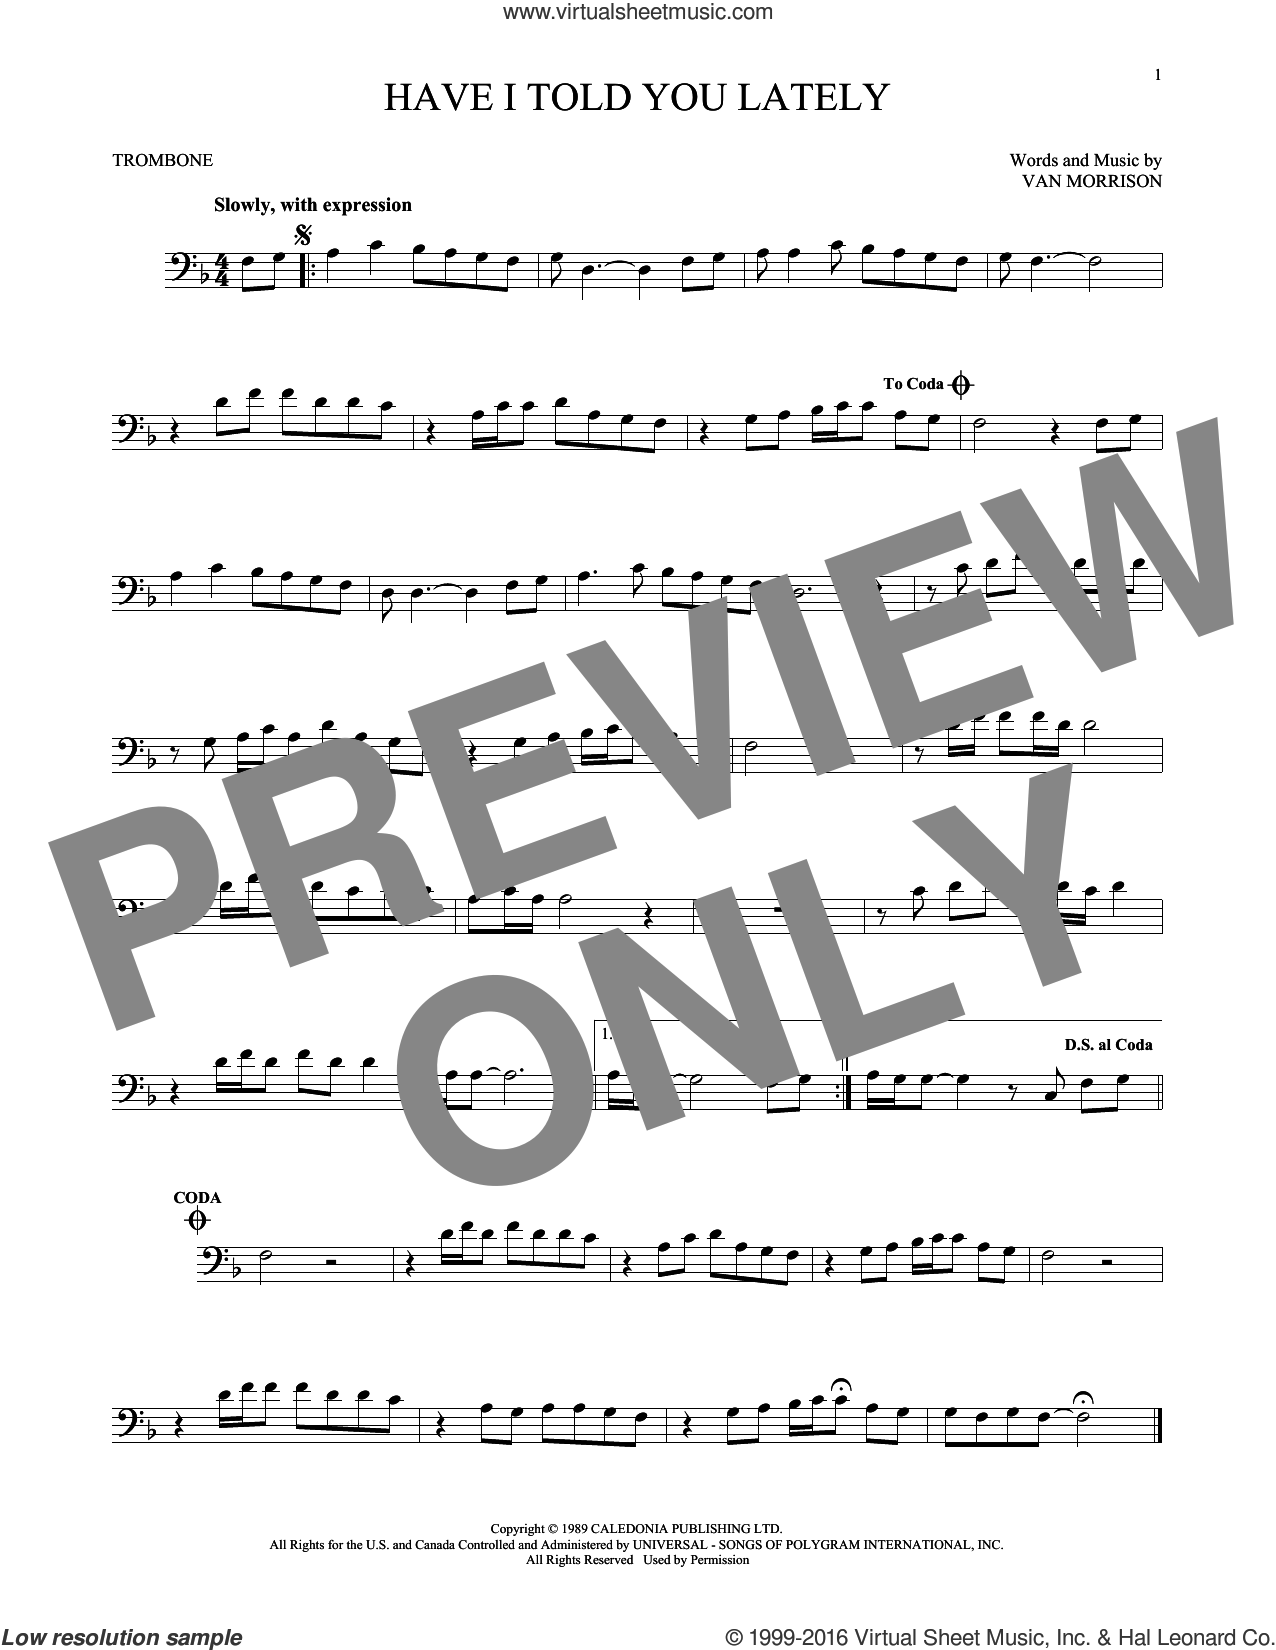 Have I Told You Lately sheet music for trombone solo by Van Morrison. Score Image Preview.